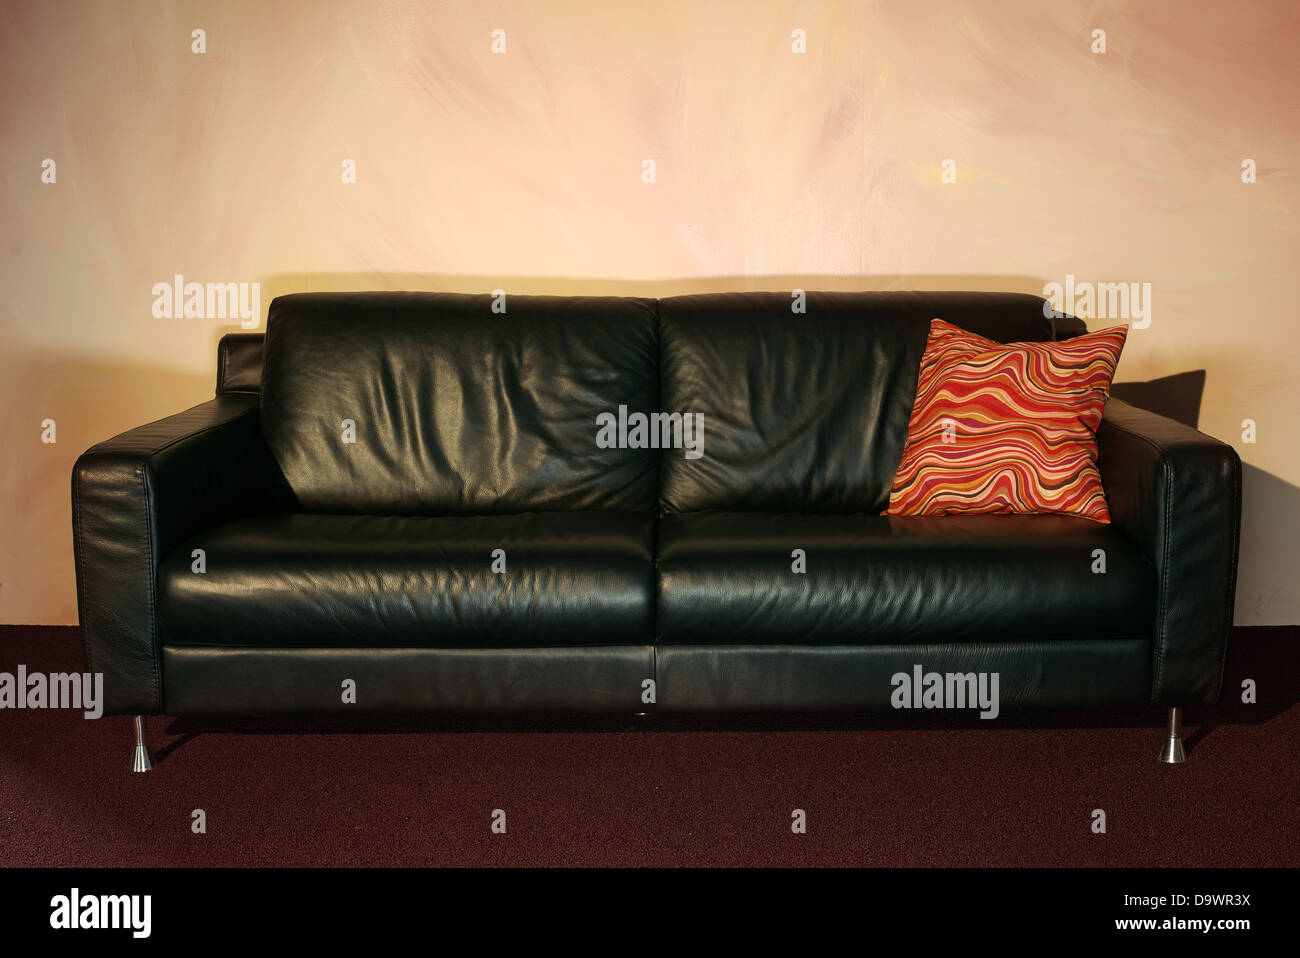 black leather couch Stock Photo